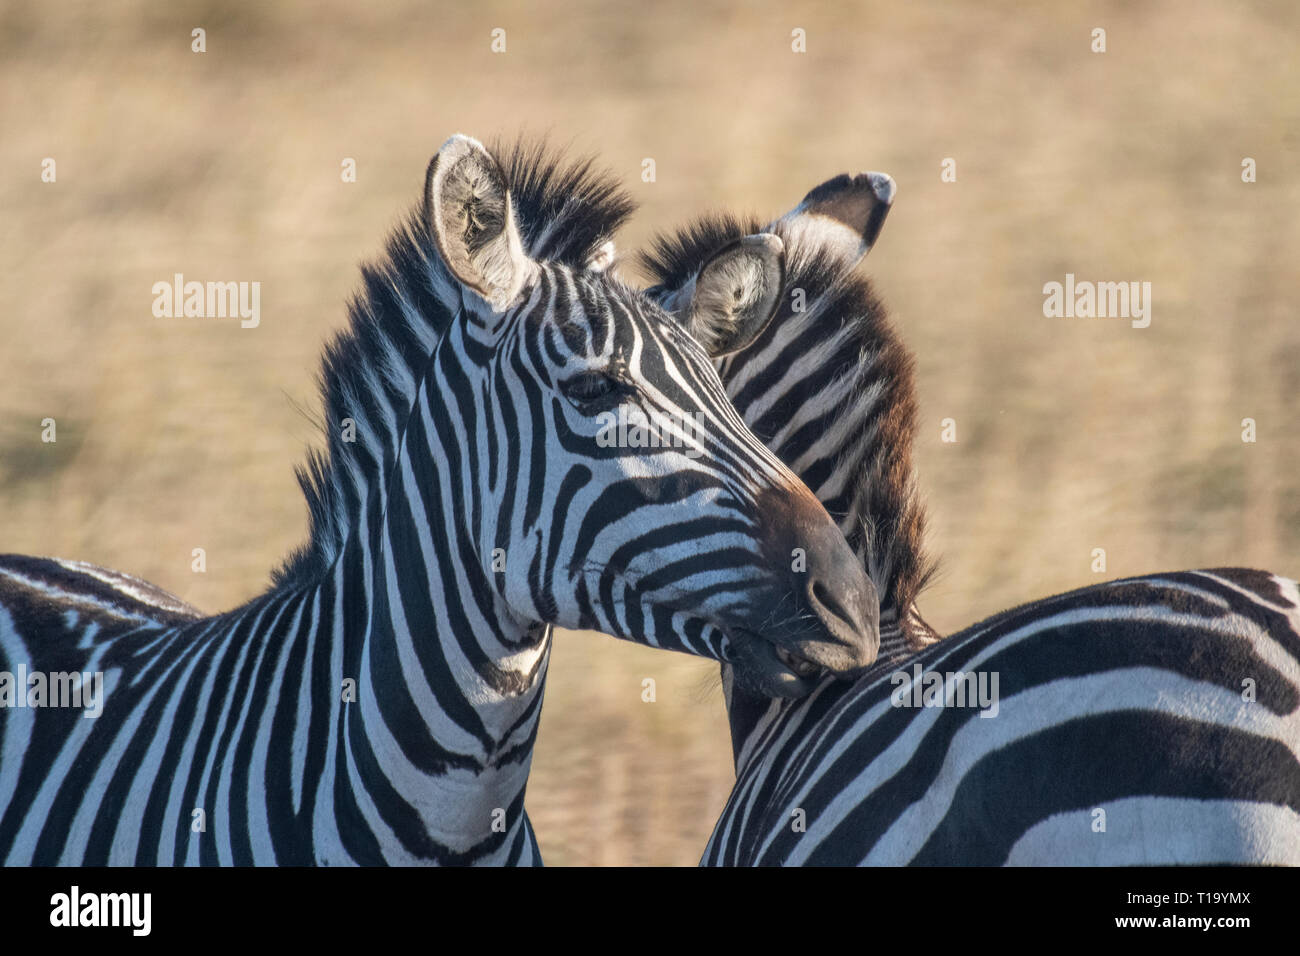 Male and female zebra making love in Maasai Mara triangle during migration season - Stock Image